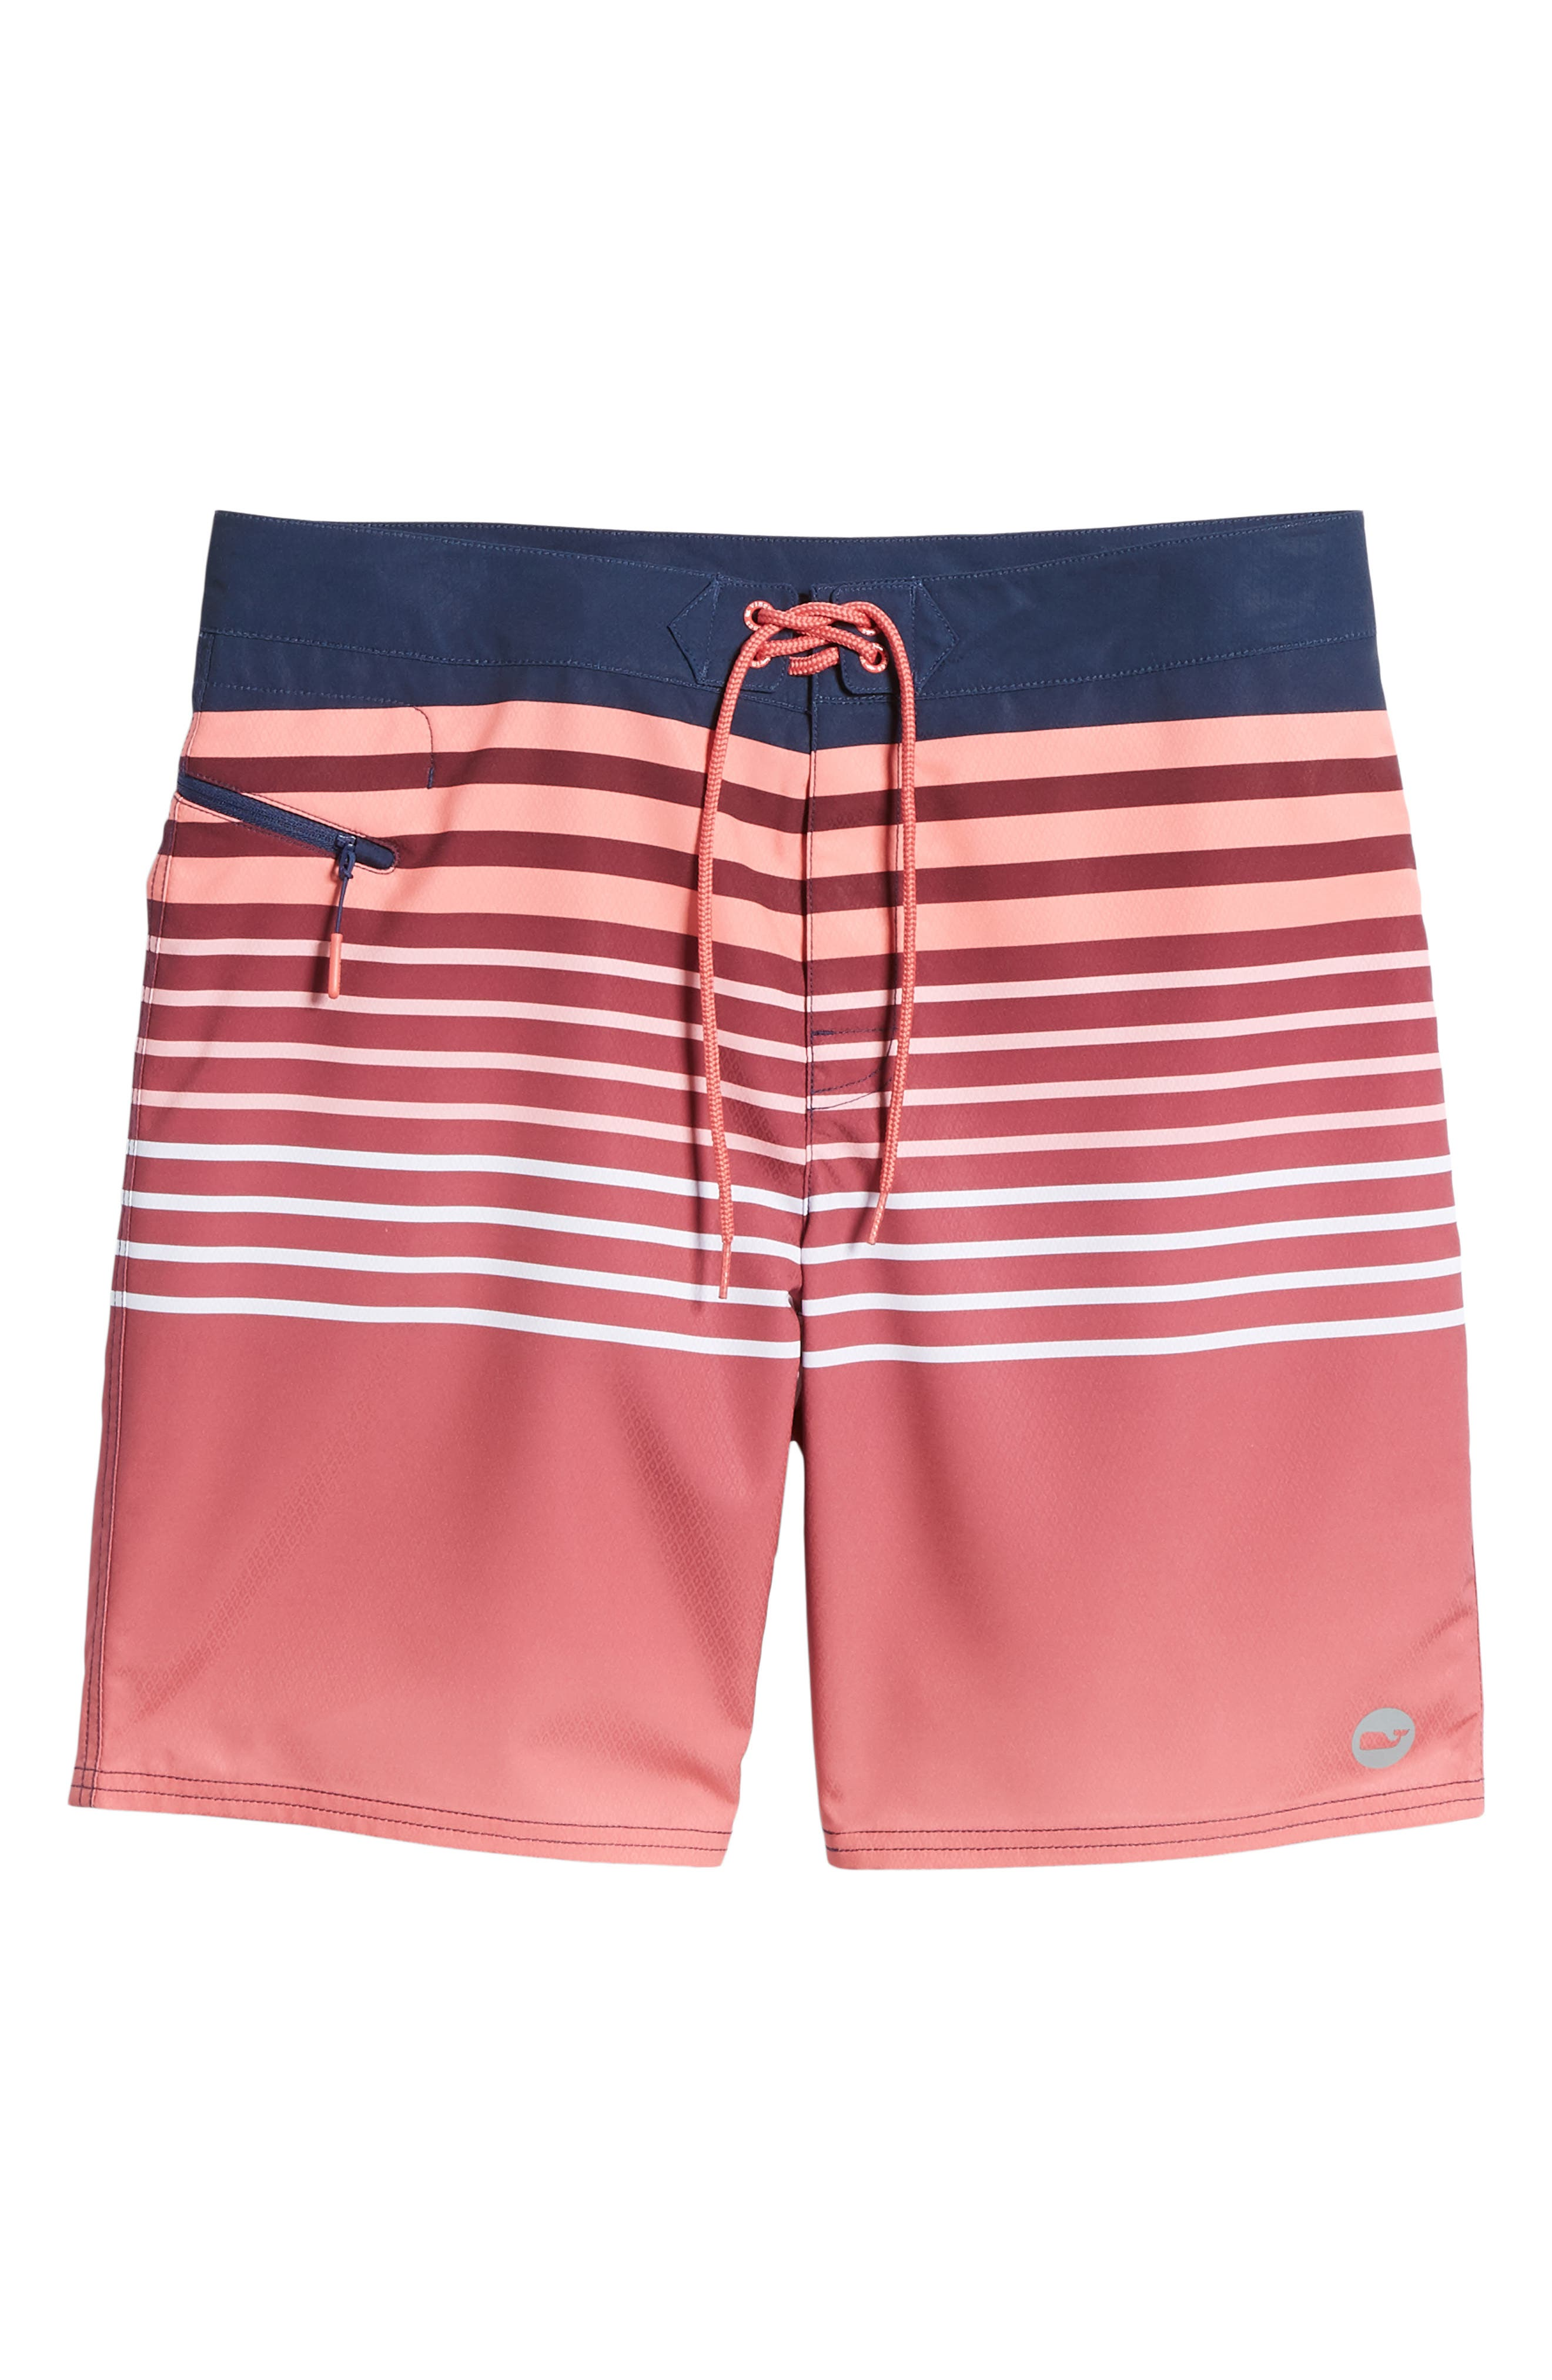 Surflodge Stripe Board Shorts,                         Main,                         color, Jetty Red